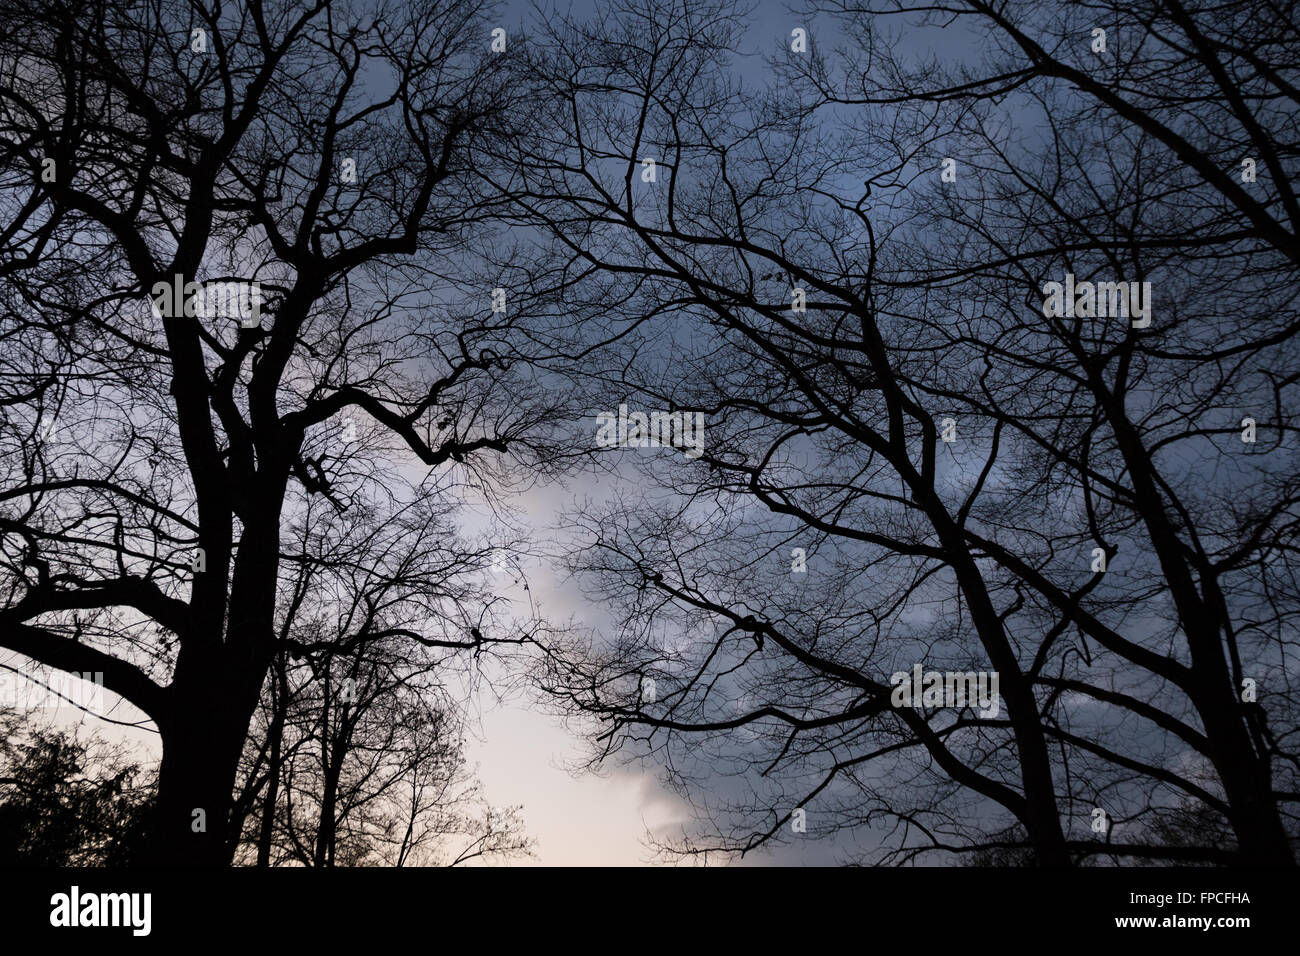 Eerie Trees with spooky and ominous atmosphere - Stock Image